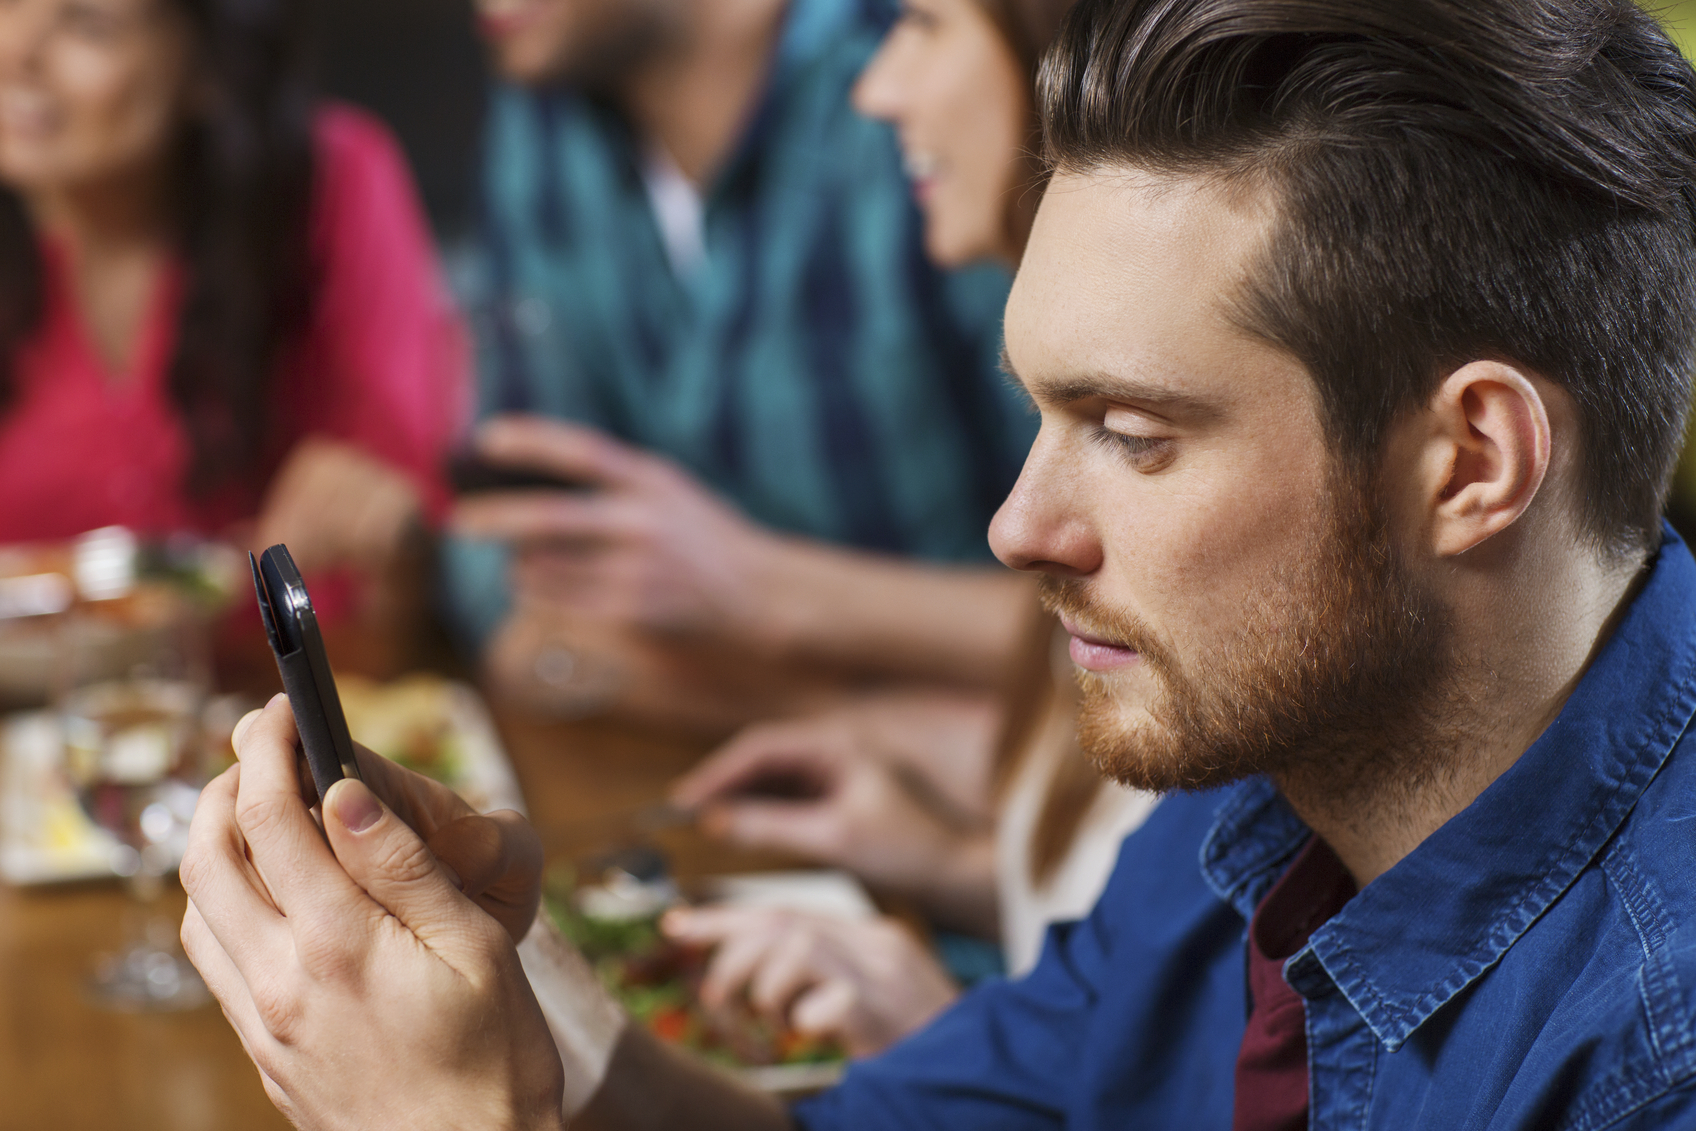 Stock photo of a man looking at his phone